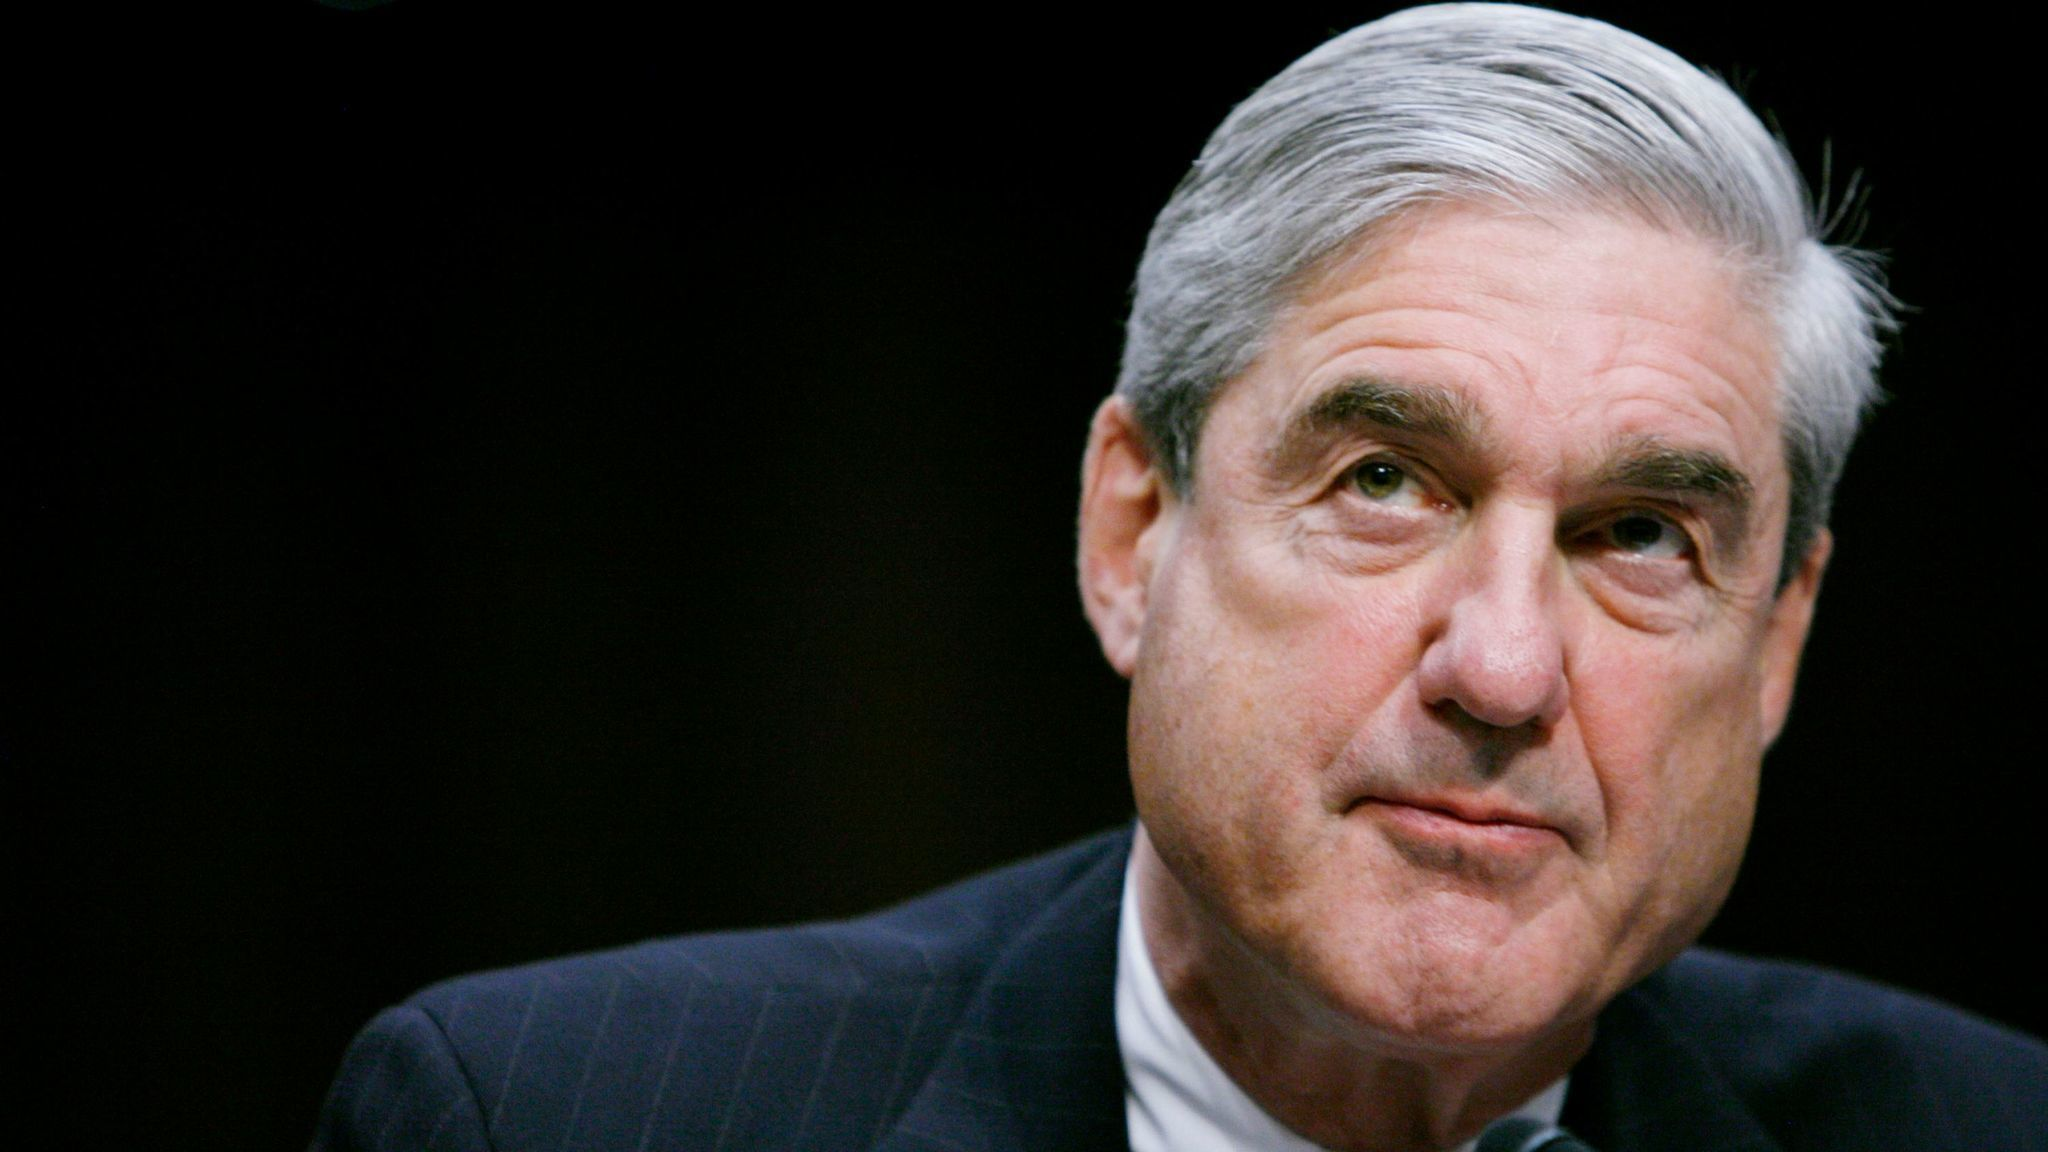 mueller case 4 days ago ellis questioned why it is mueller's office that is prosecuting former trump campaign manager paul manafort in a tax and bank fraud case the judge said the charges against manafort do not have anything to do with russian interference in the 2016 election or potential collusion with russians by the trump.